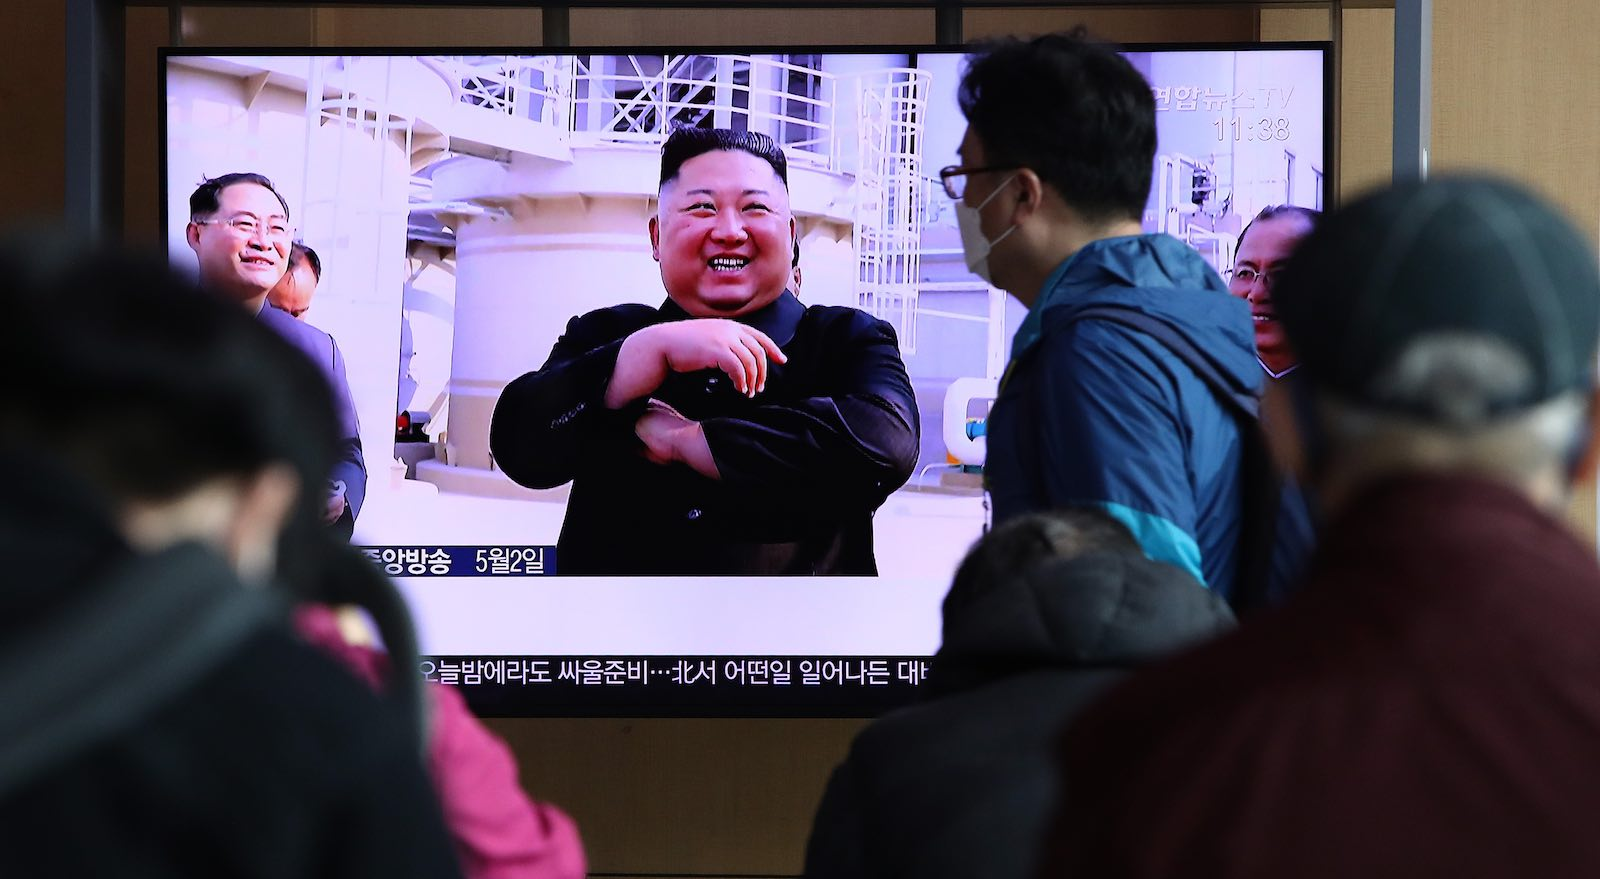 North Korean leader Kim Jong-un seen on televisions in South Korea on 2 May (Chung Sung-Jun/Getty Images)